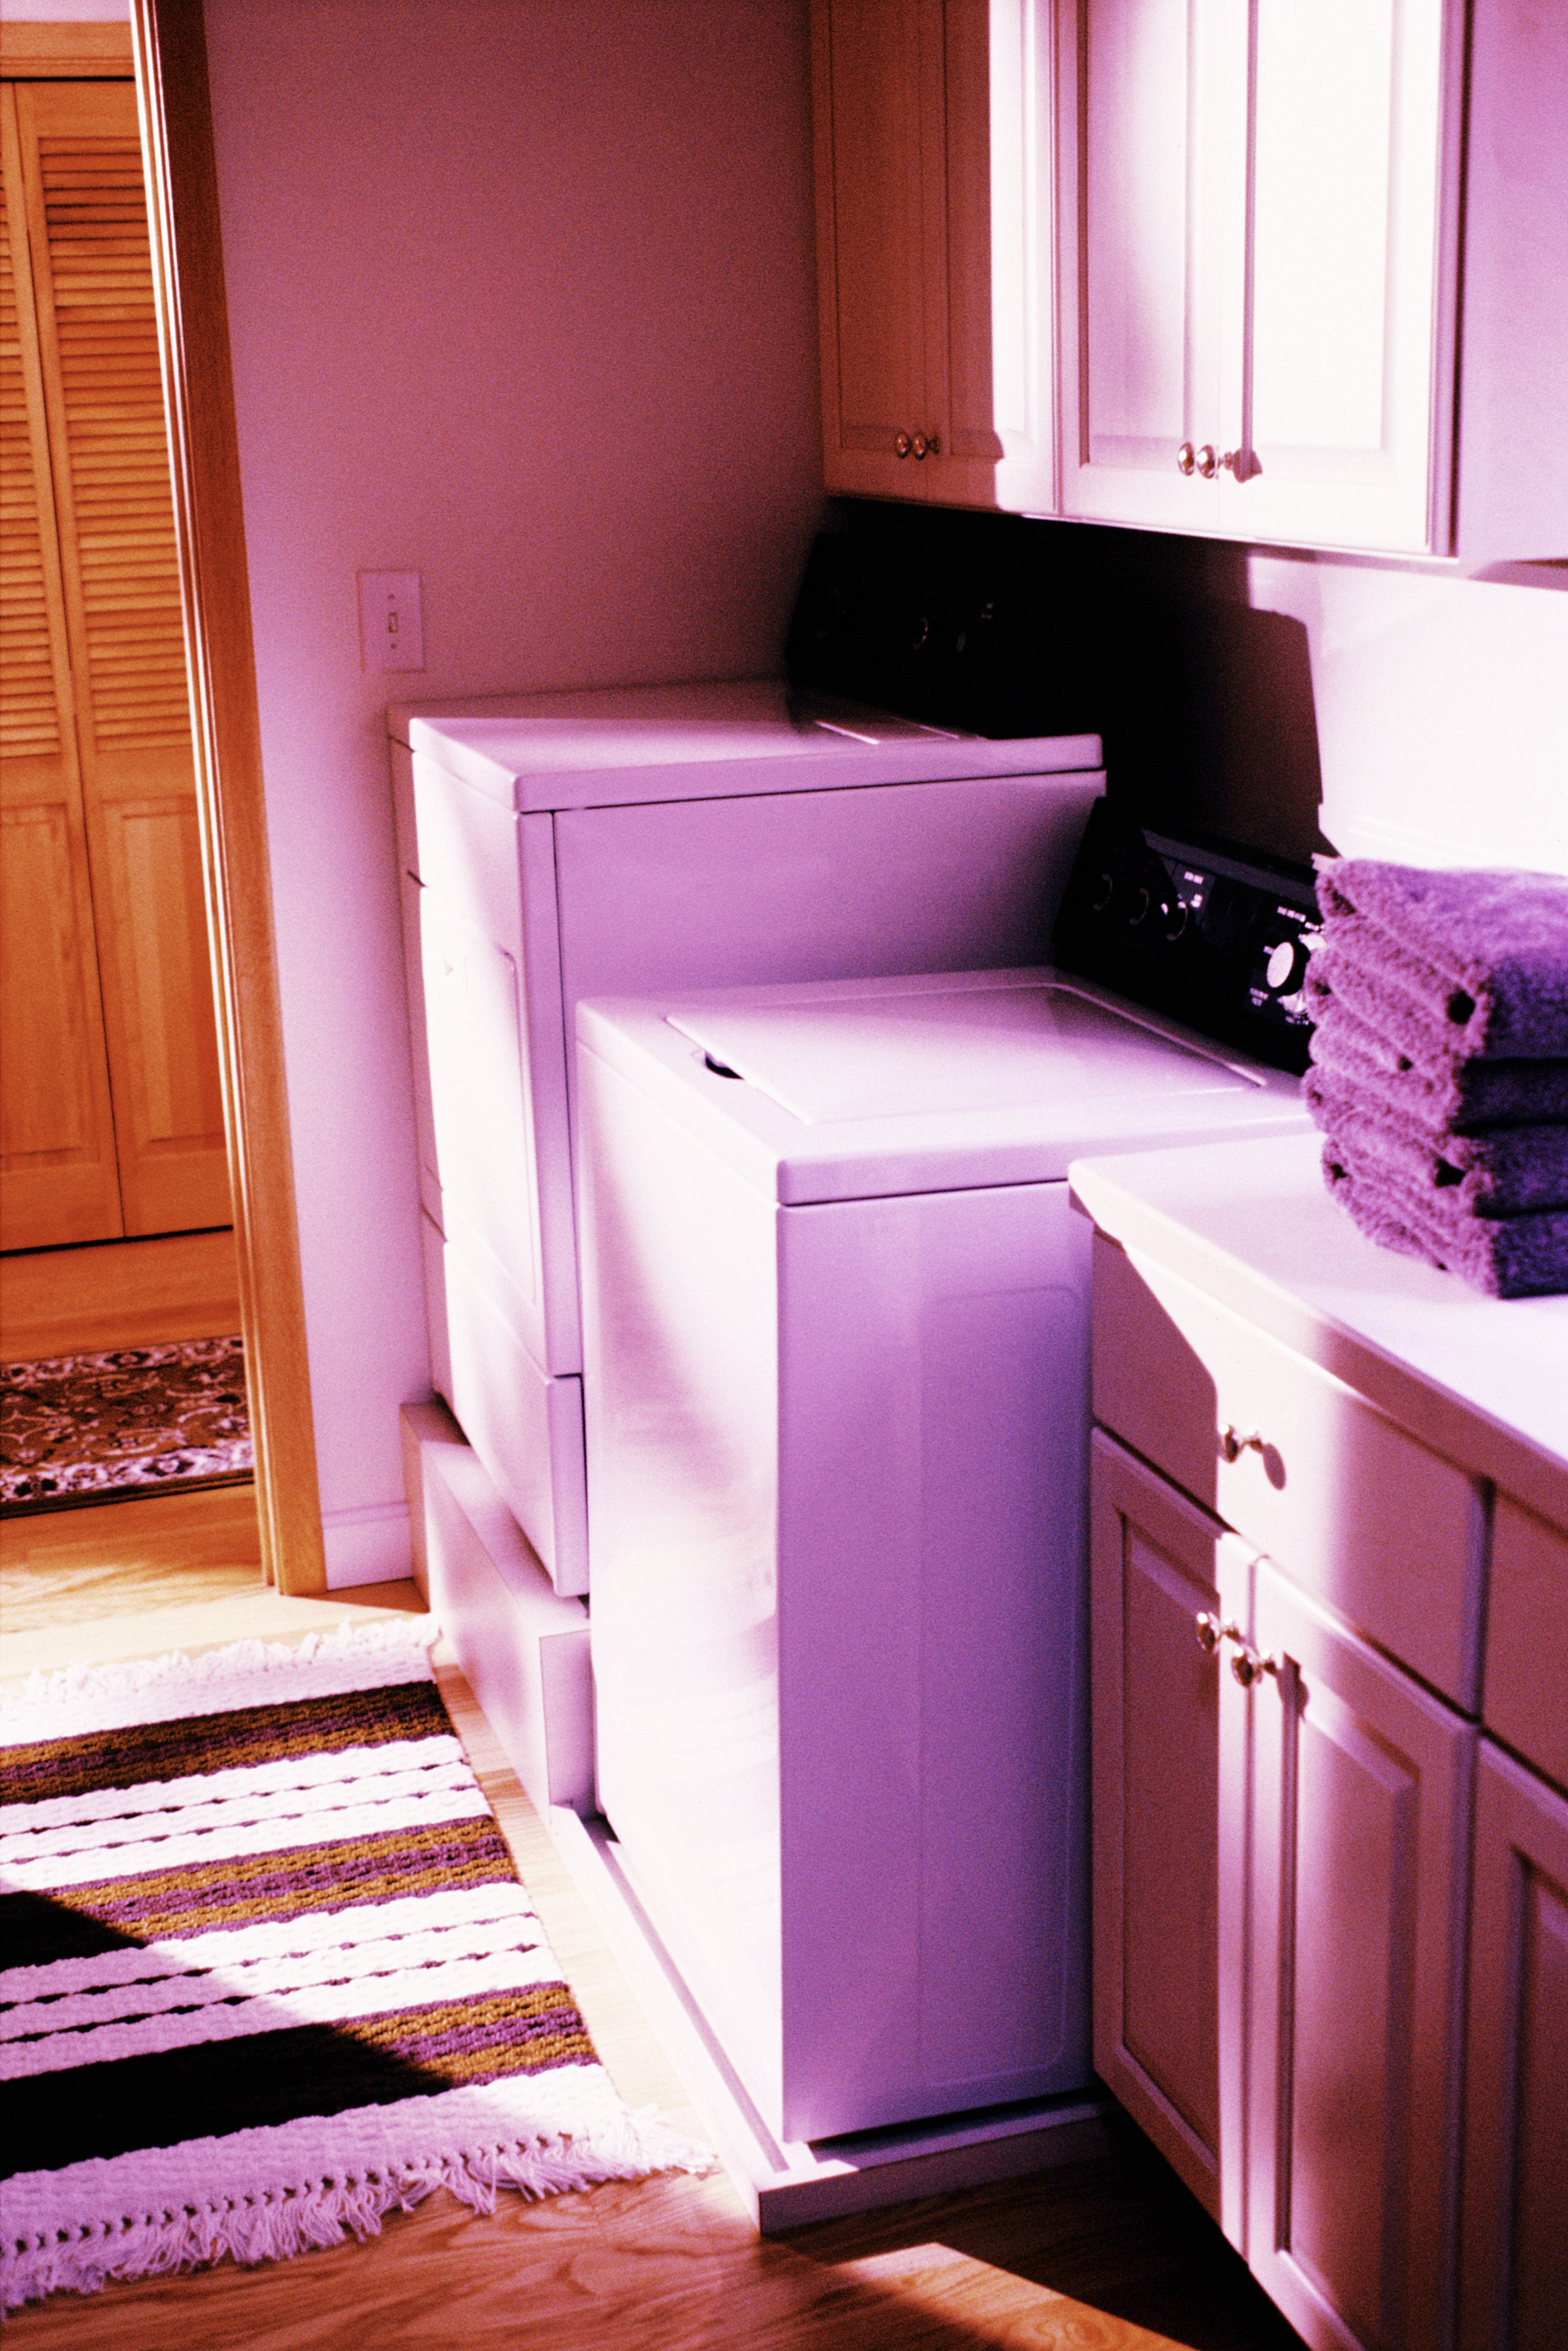 How To Change The Color Of A Washer Amp Dryer Without